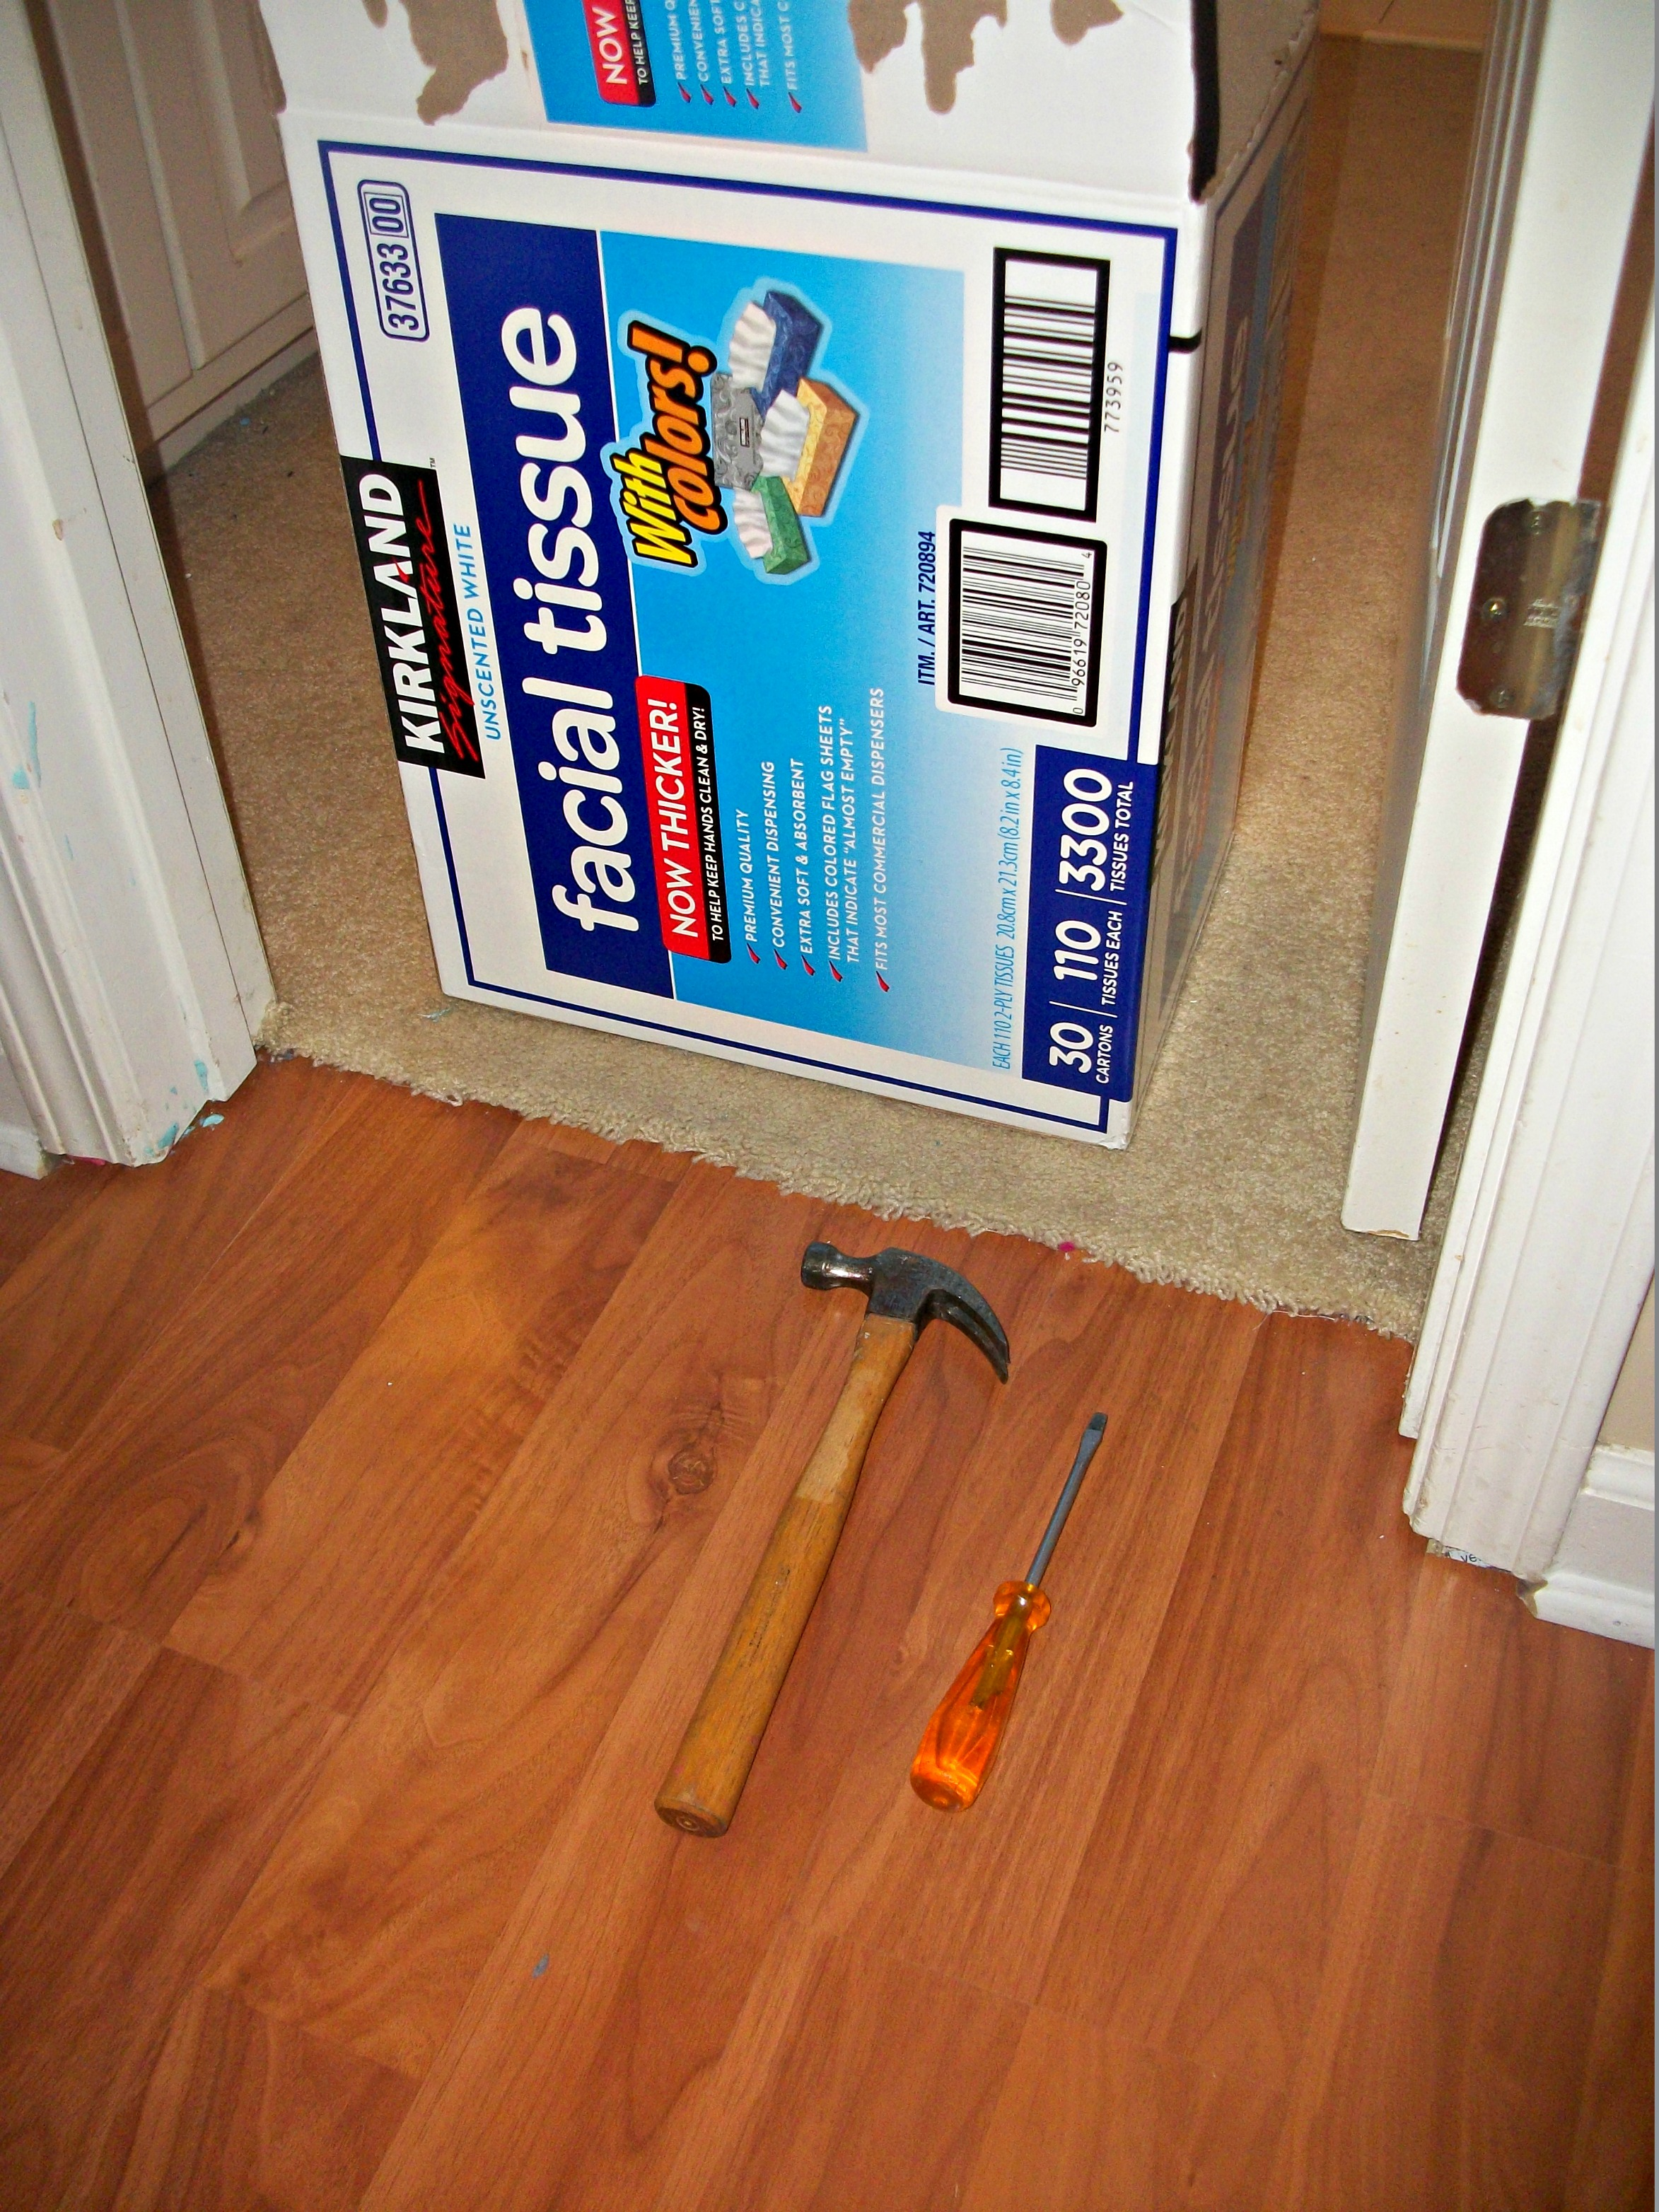 DIY Home Repair: Inexpensive Bathroom Flooring - Before 3 pm